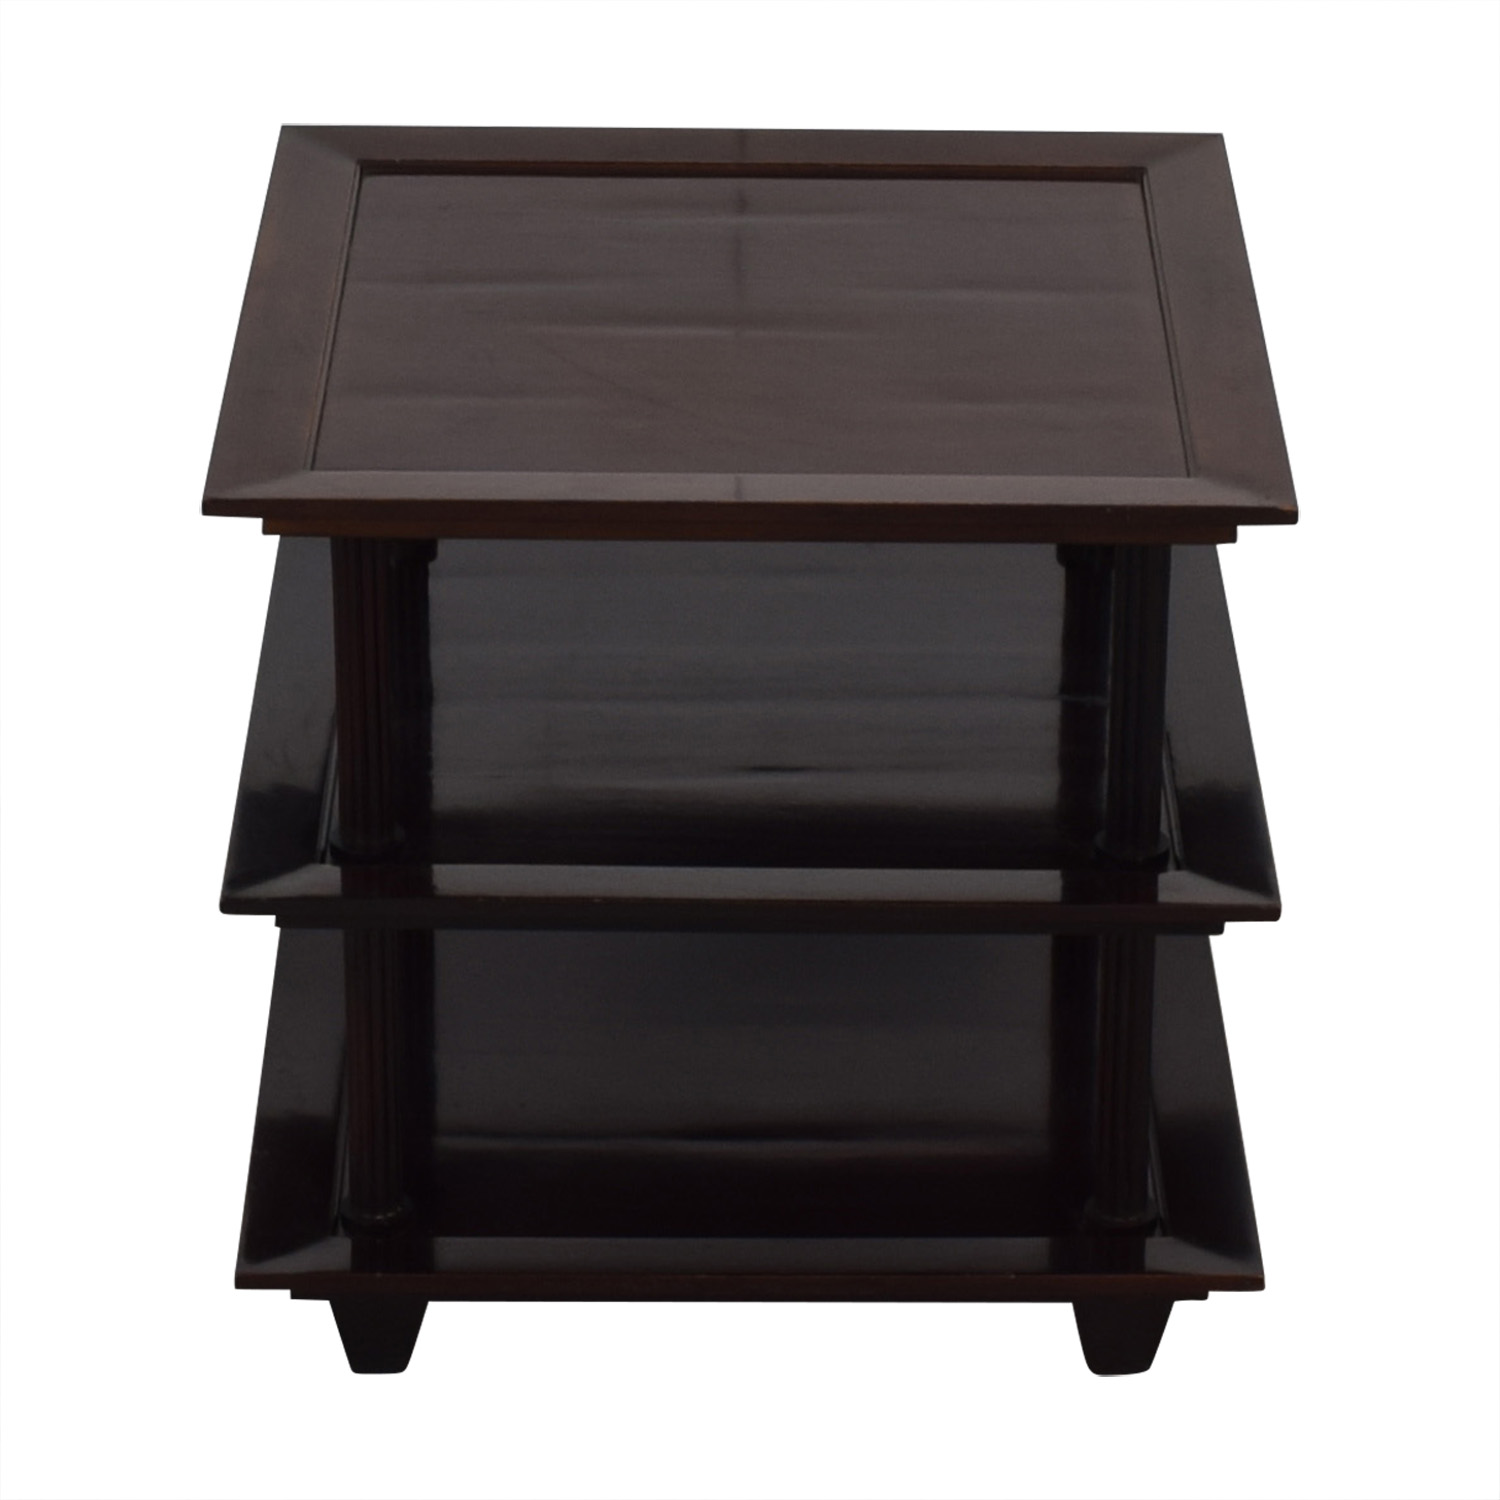 shop Baker Furniture by Barbara Barry Three Tiered Accent Table Baker Furniture Tables